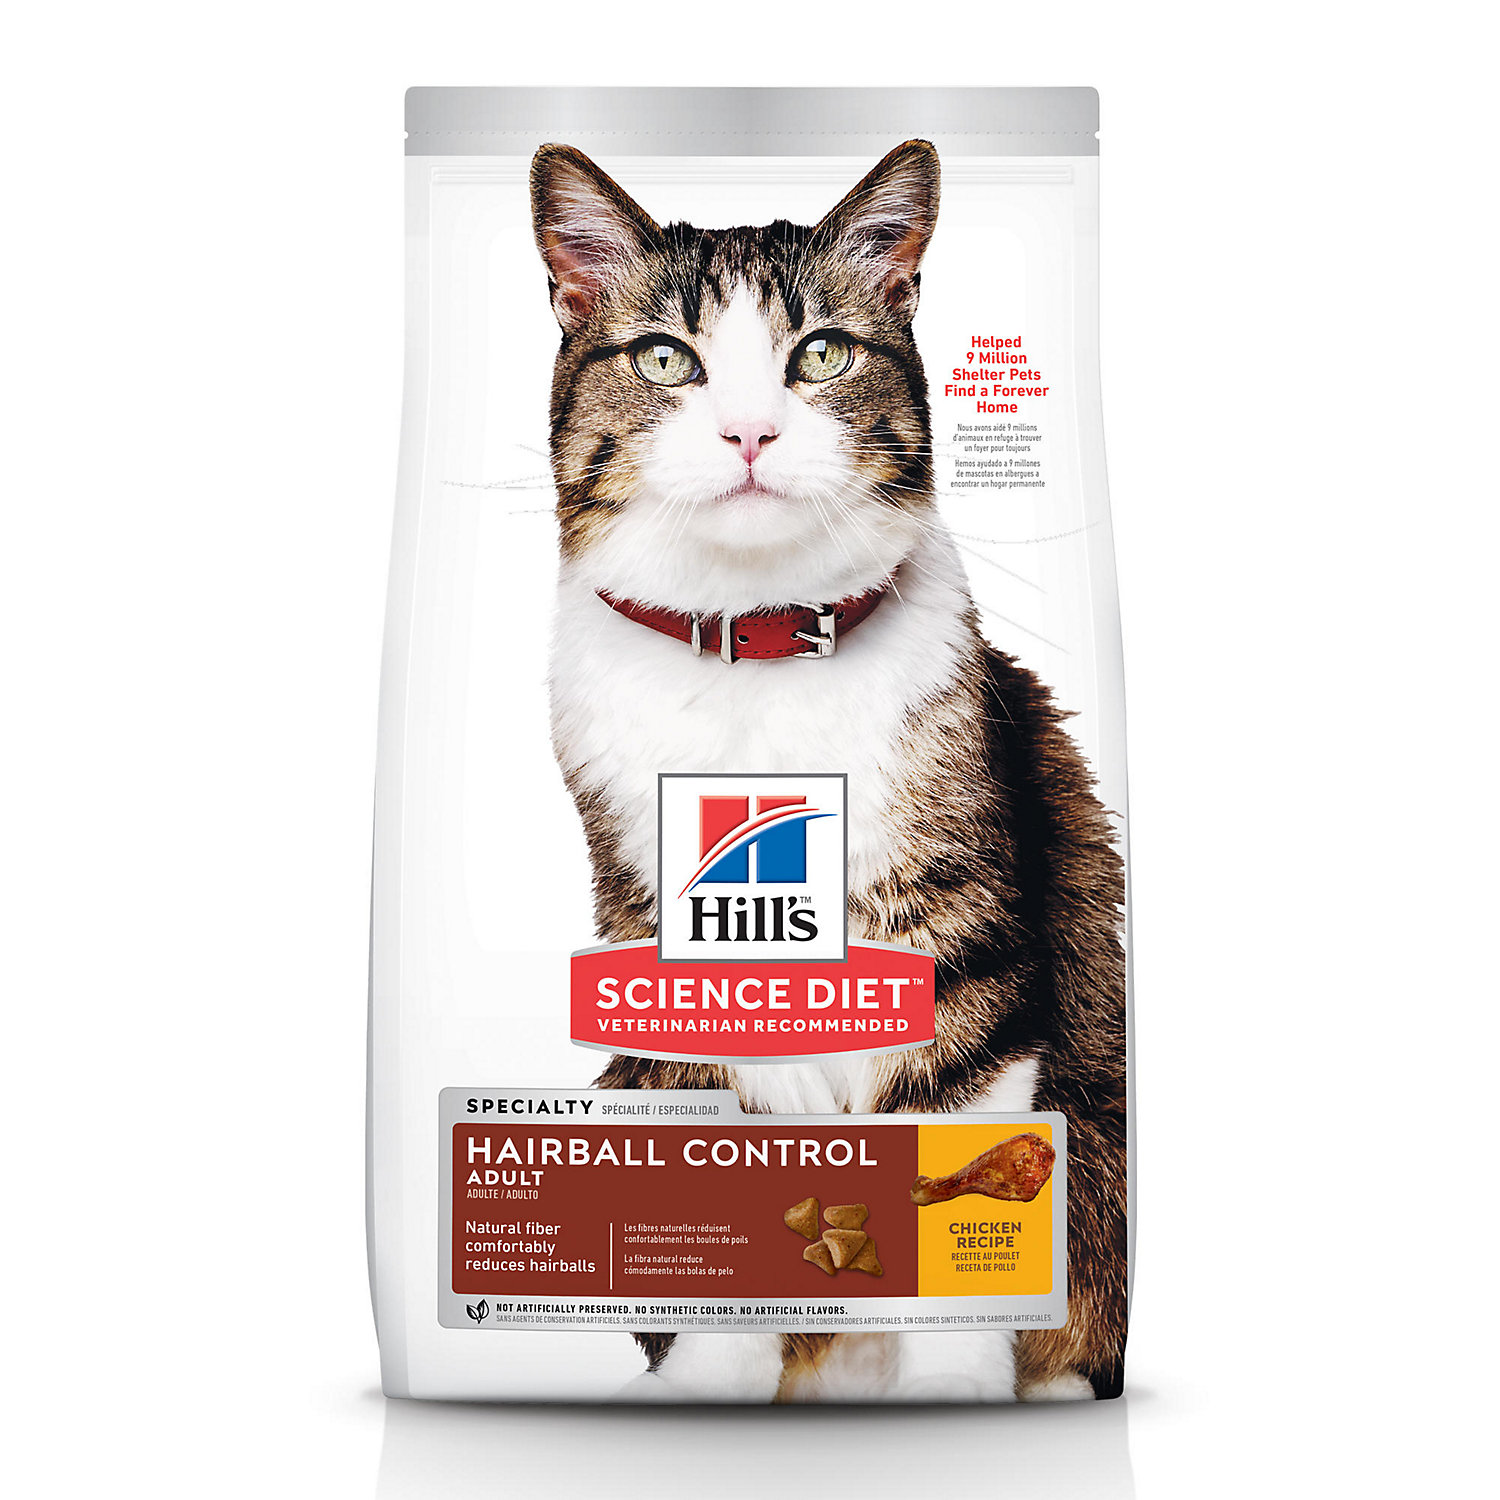 Hills Science Diet Hairball Control Adult Cat Food